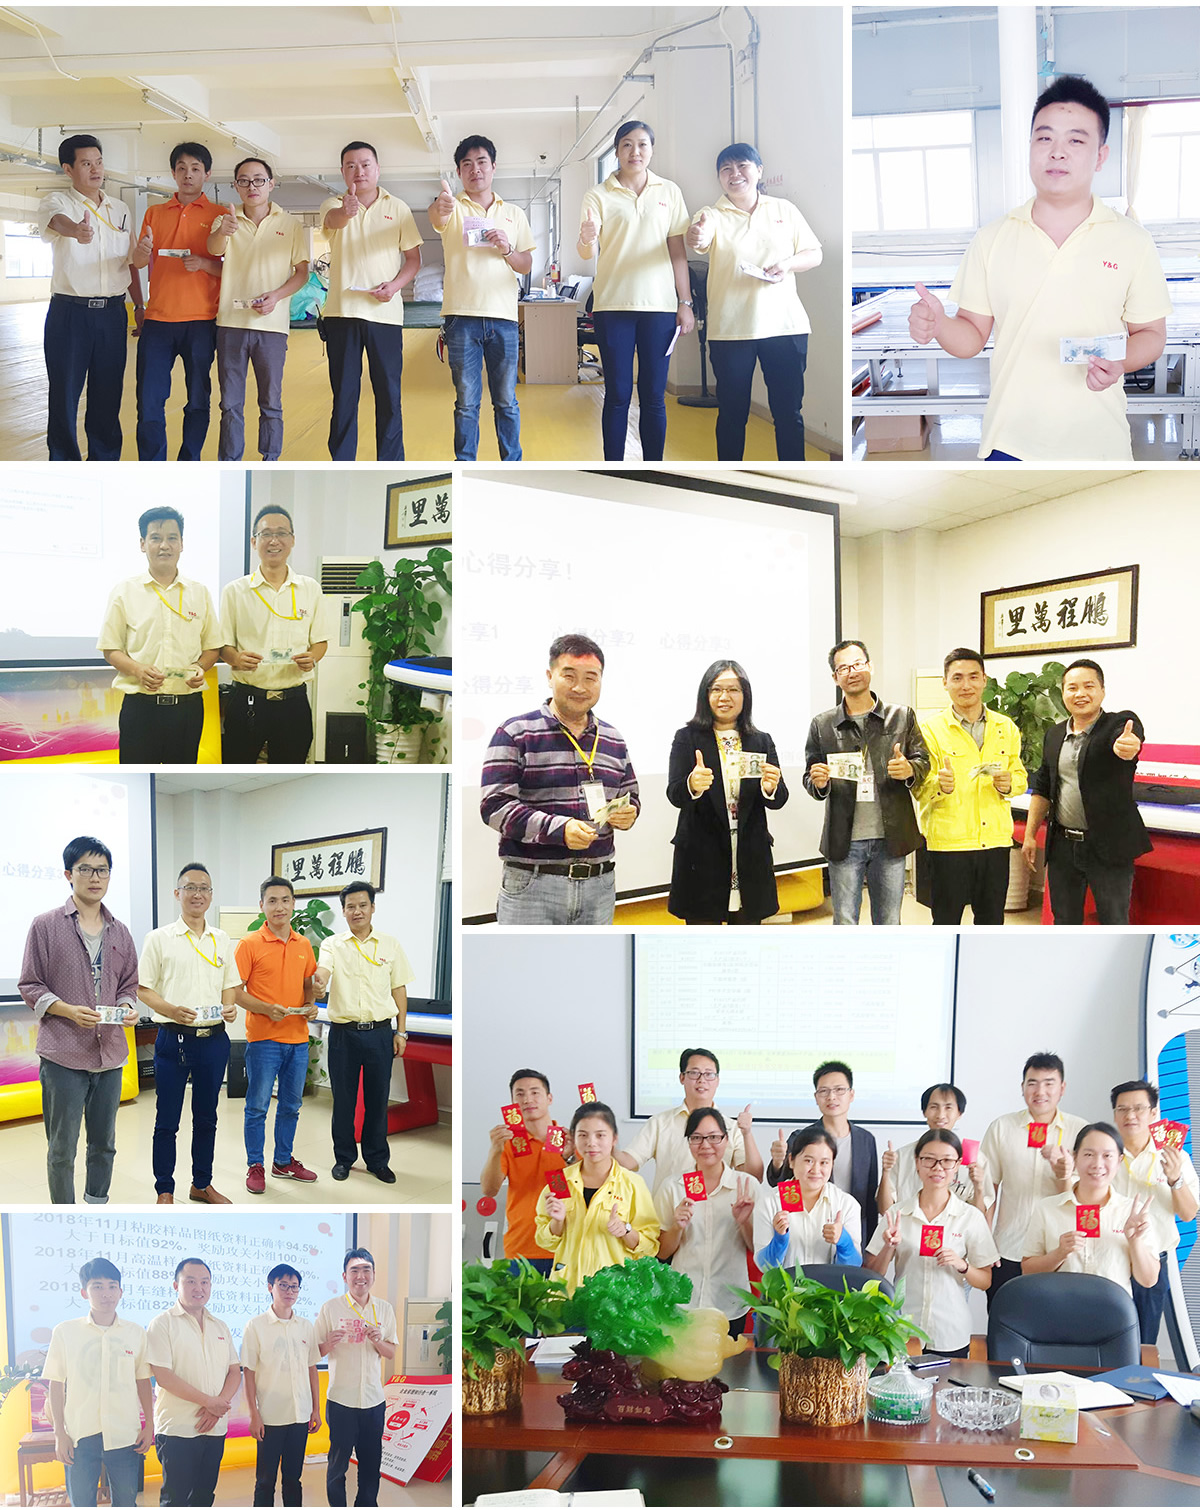 Y&G Team(Pango Inflatable Co., Ltd)